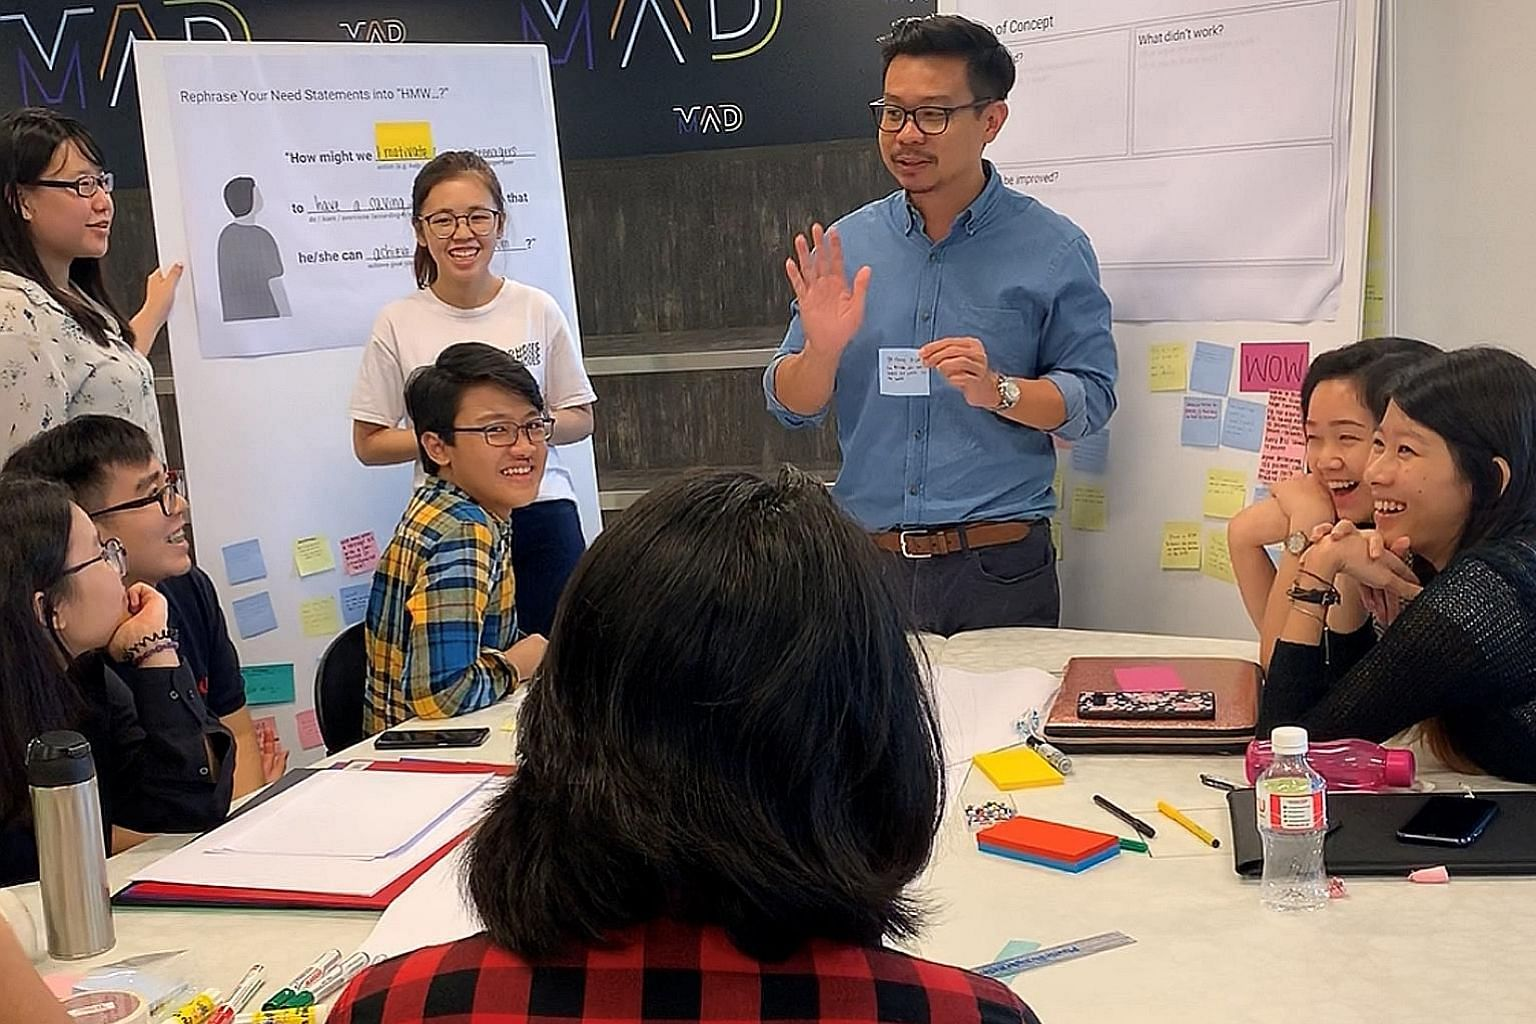 Singapore Polytechnic students in a discussion at a workshop to identify what they wanted from the United Overseas Bank branch on their campus. Operations at the branch started last November.